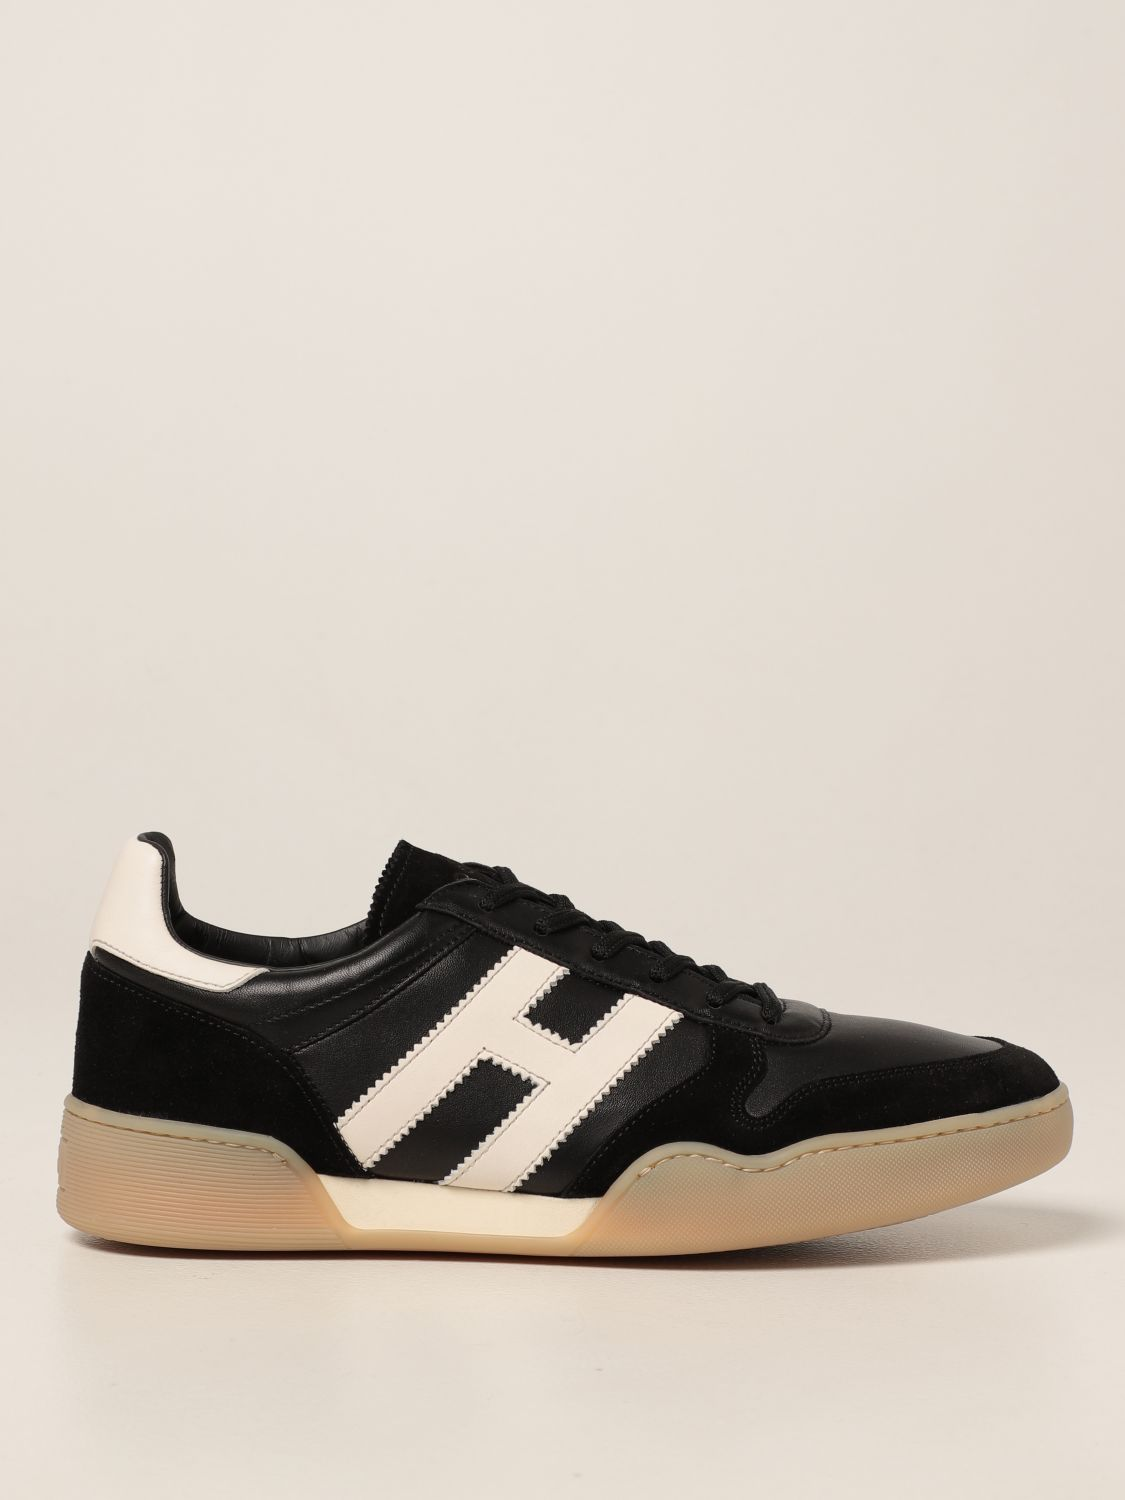 H357 Hogan sneakers in leather and suede